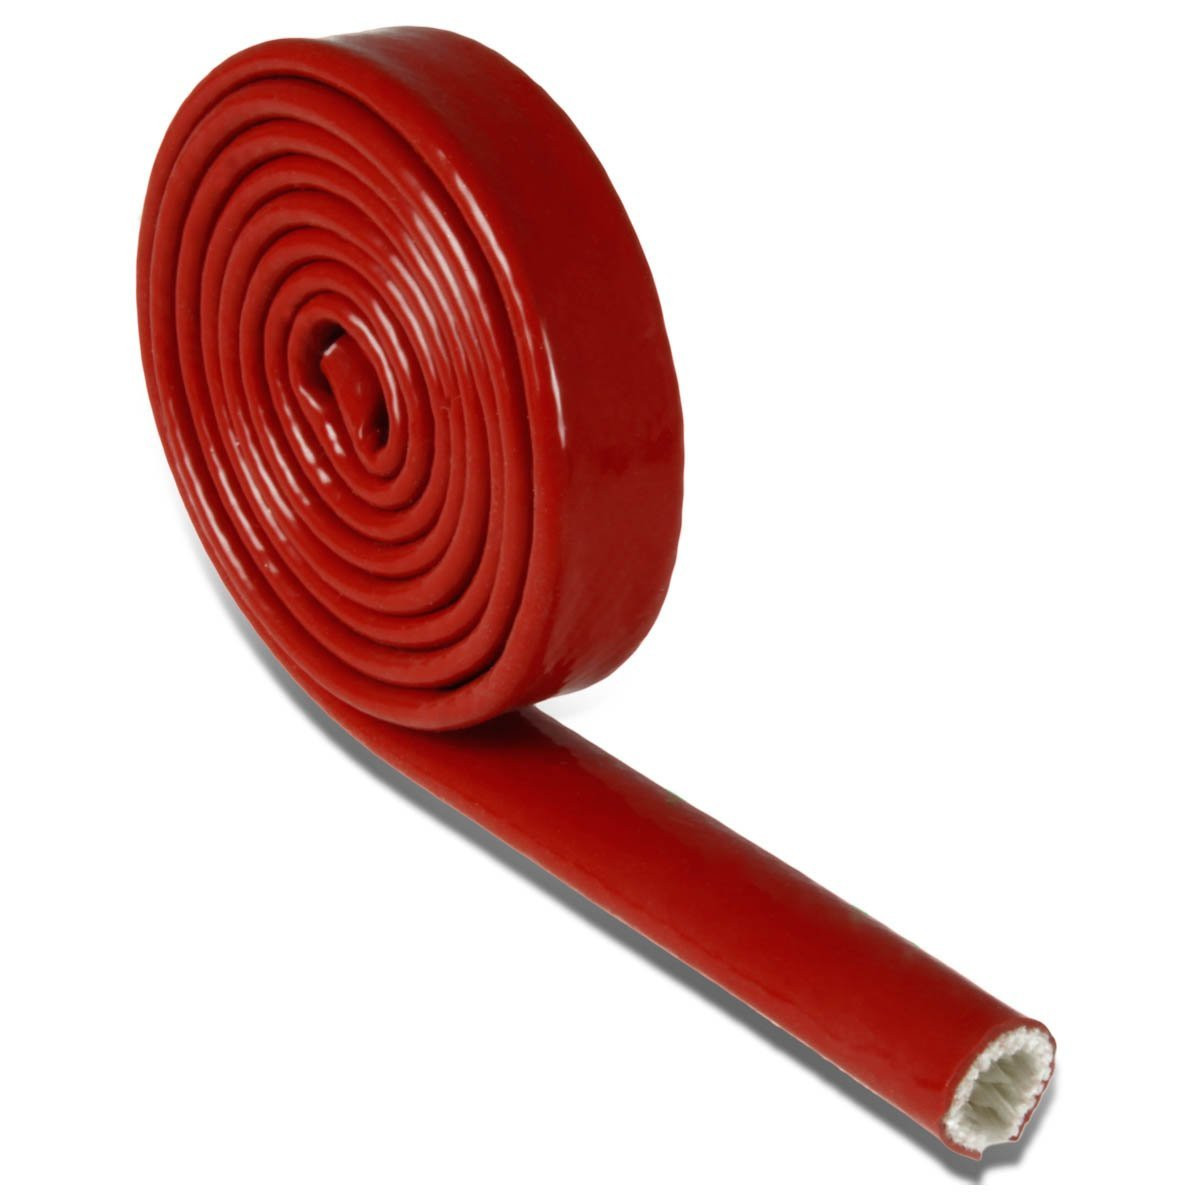 Pyrojacket Thermo Glass Fibre Firesleeve size 6.0mm - Red Oxide